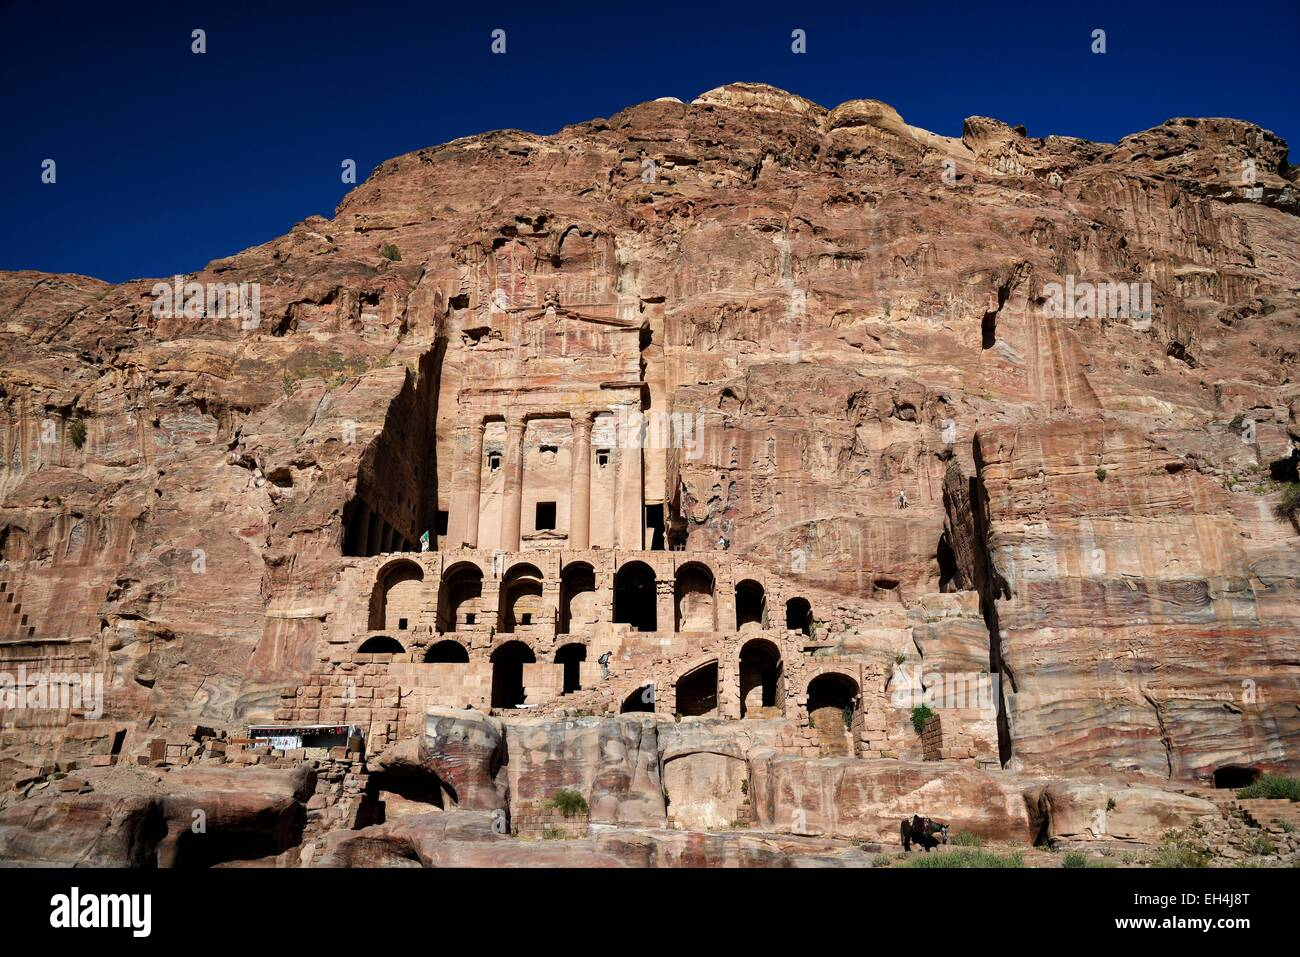 Jordan, Nabataean archeological site of Petra, listed as World Heritage by UNESCO, the Urn Tomb is part of the Royal Stock Photo